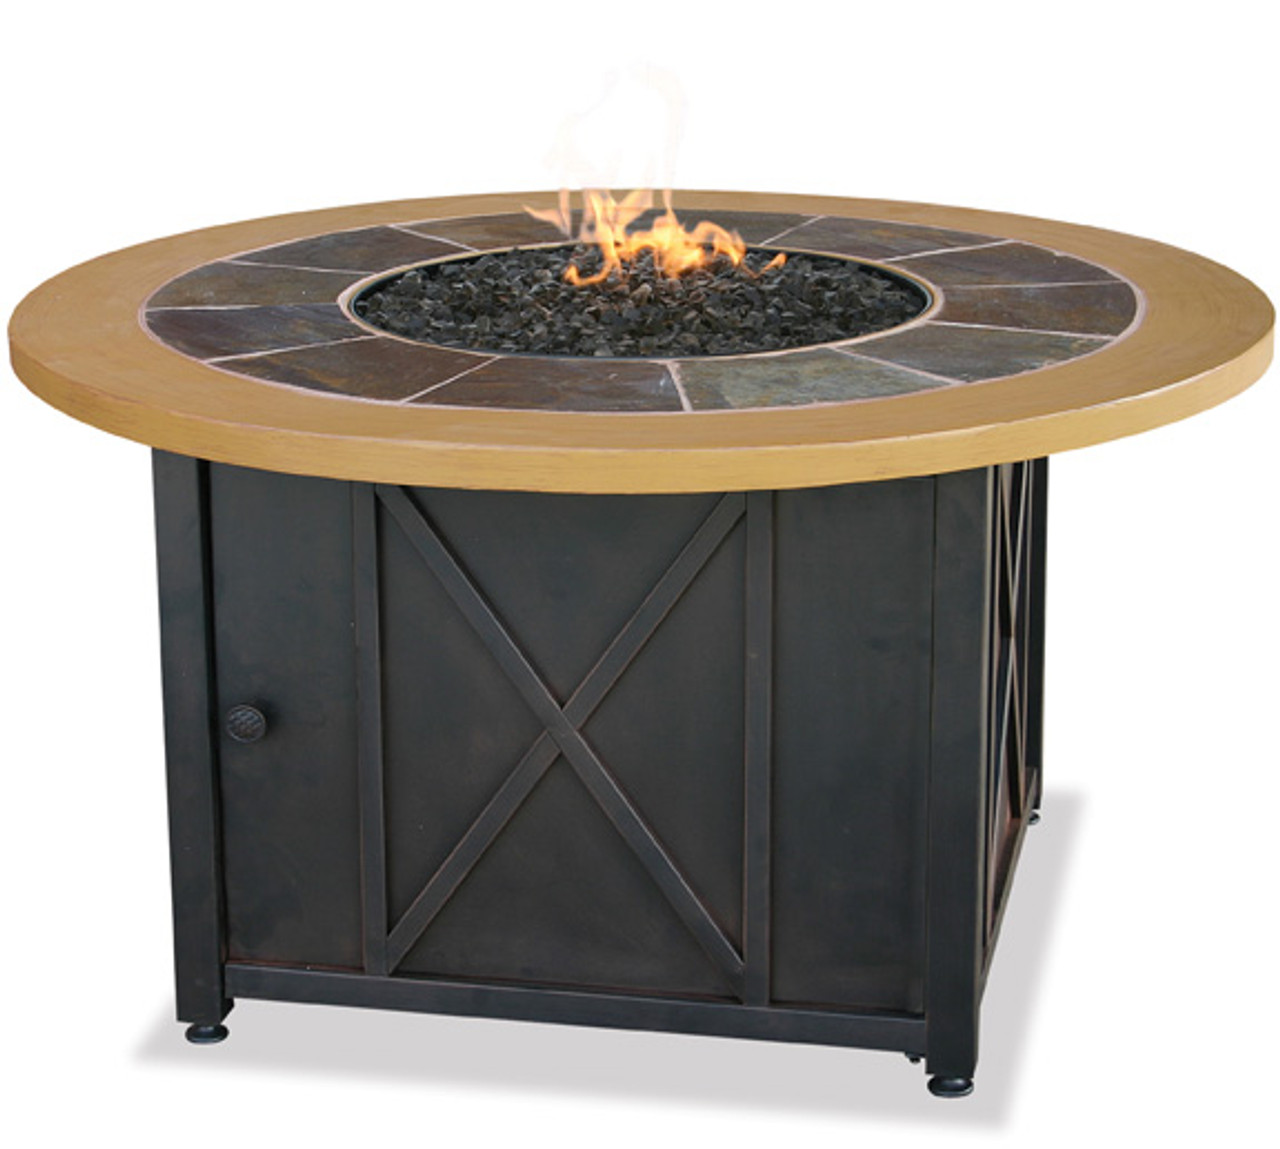 Blue Rhino Uniflame Lp Propane Gas Fire Pit Table With Round Slate Faux Wood Mante Gad1362sp The Fire Pit Store